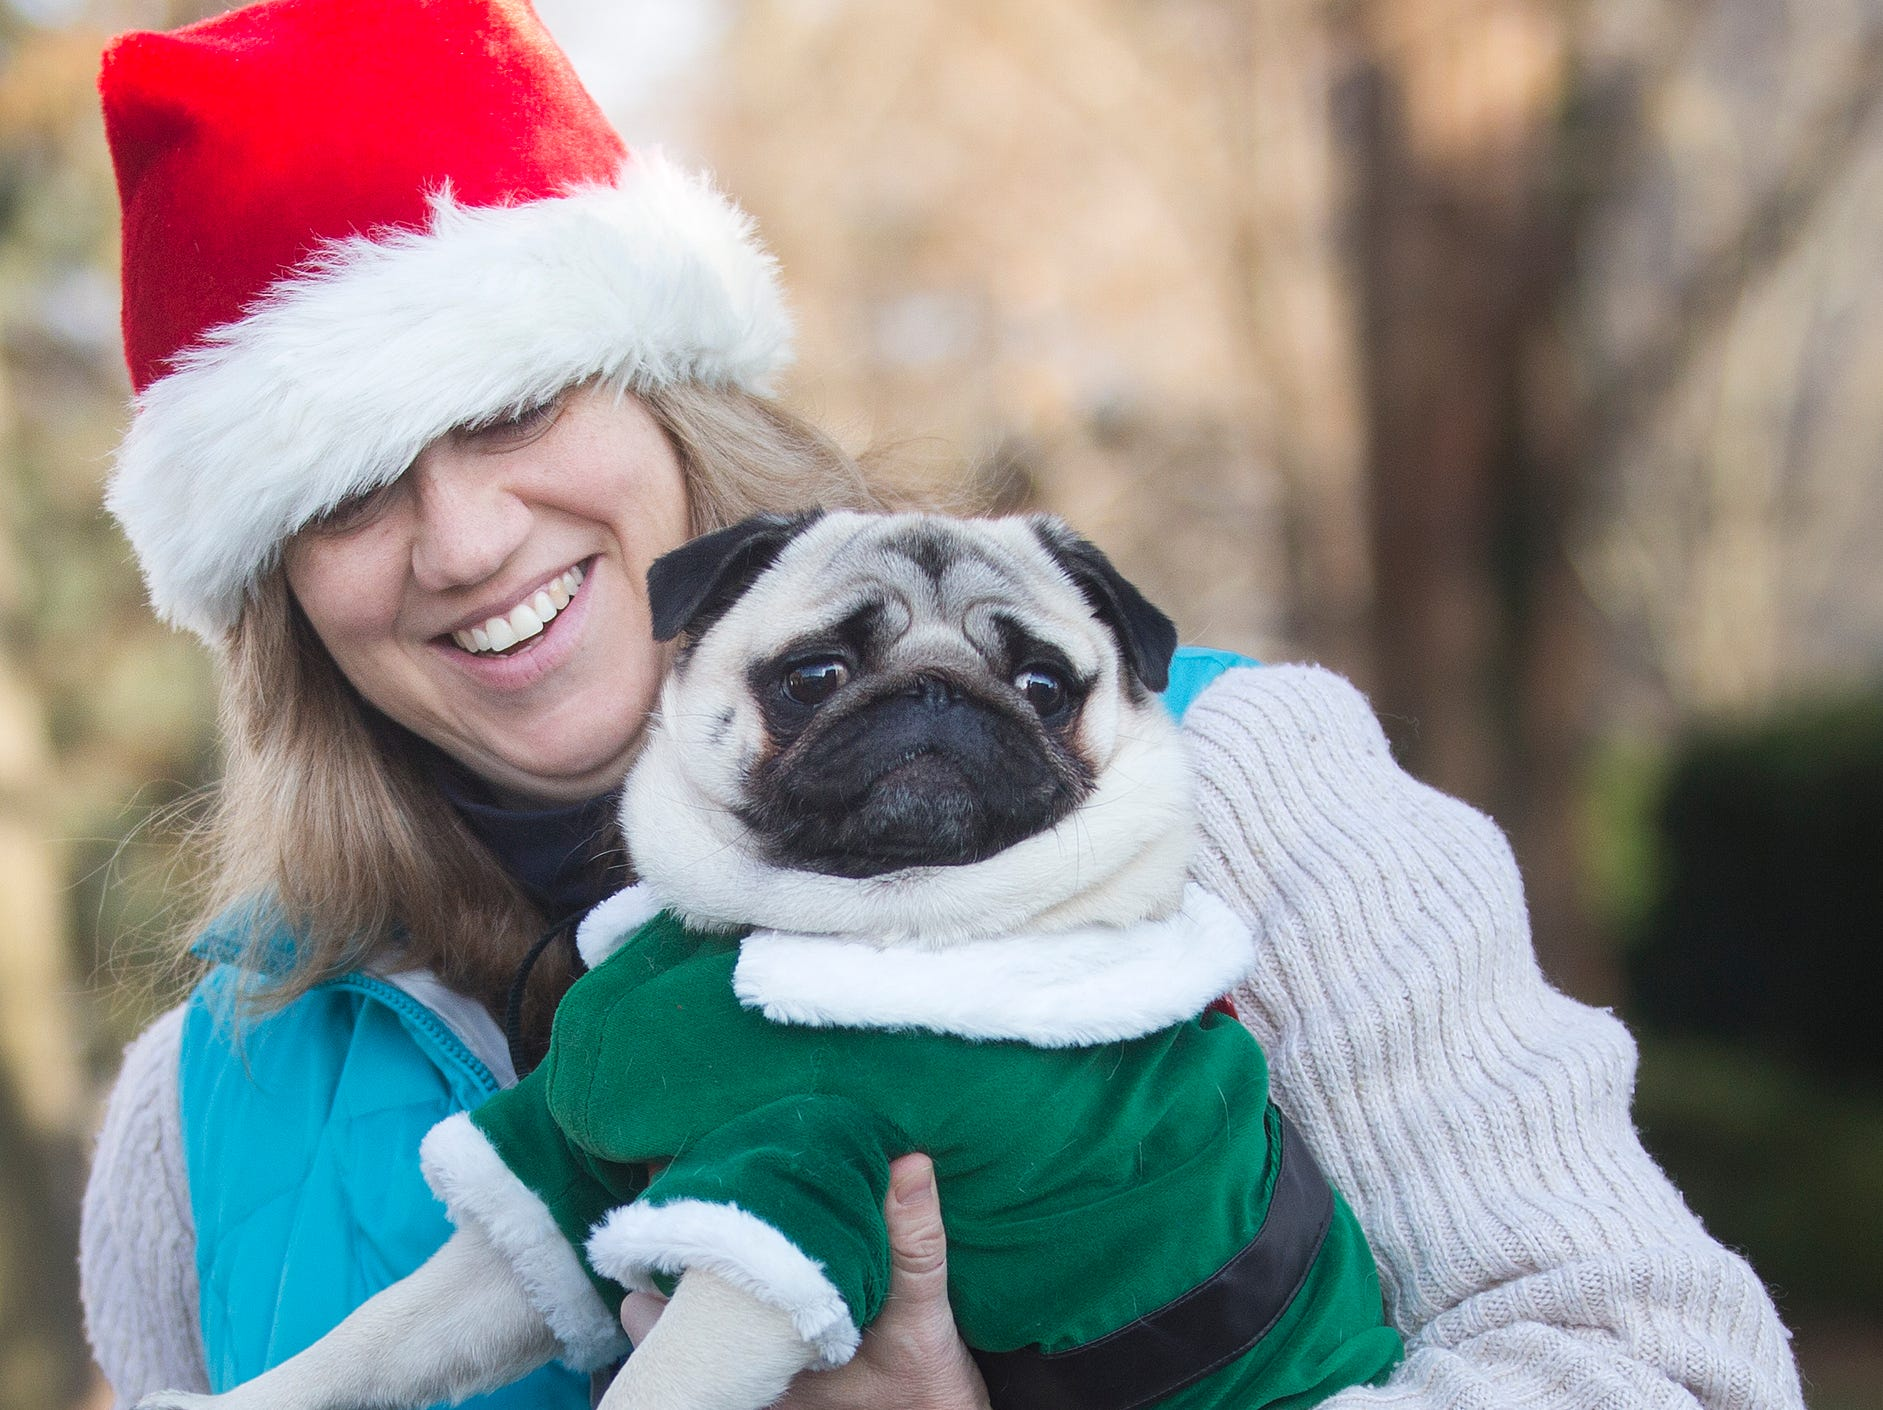 Brenda Van Der Eems holds her Pug dog Ernie, 3, ready to watch the 33rd Annual Santa Parade in Hawthorne on Saturday, Dec. 1, 2018.